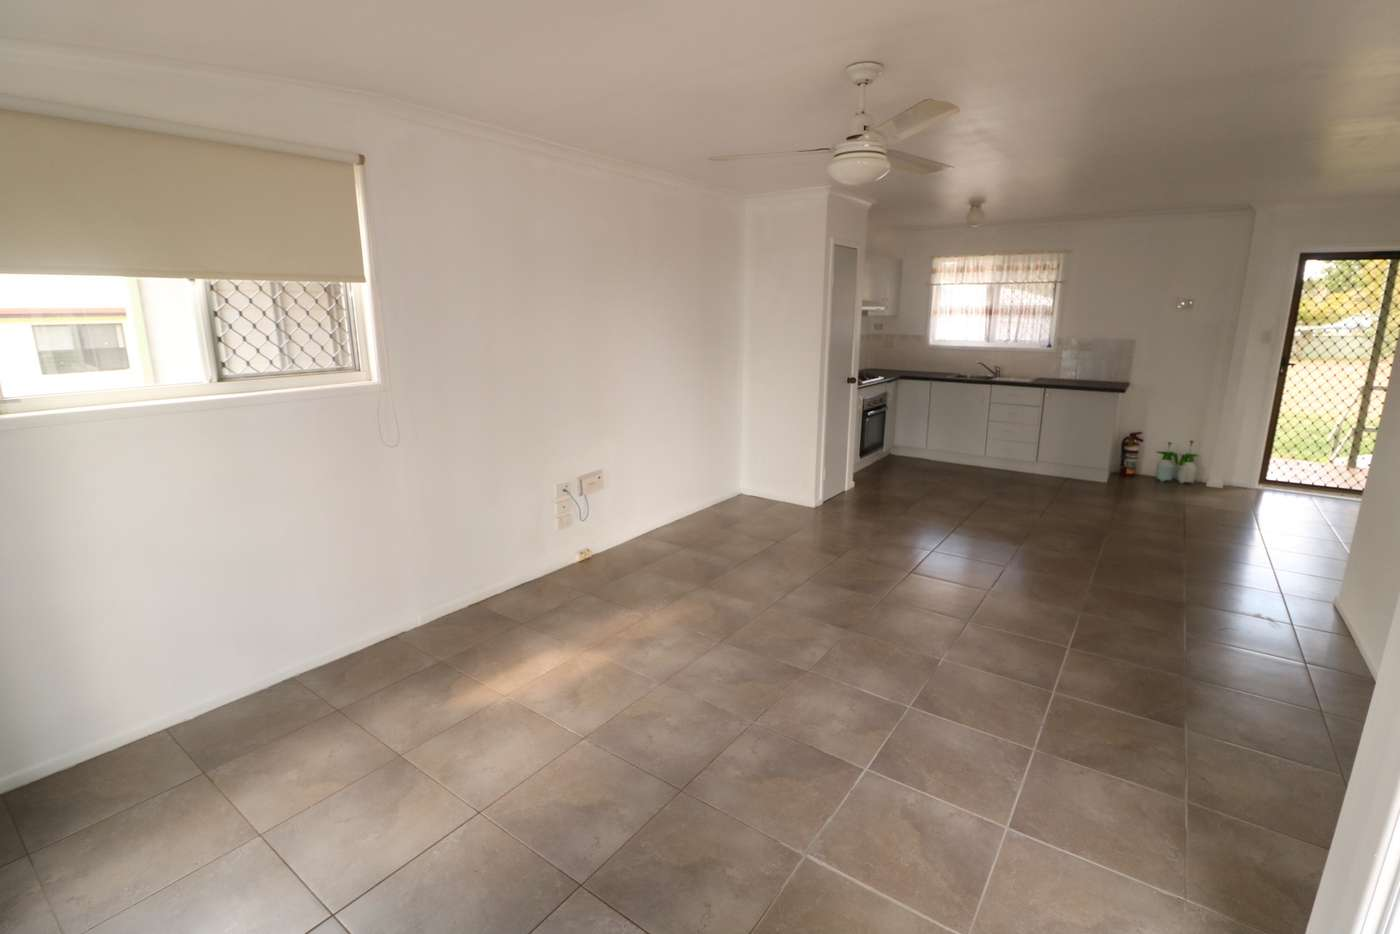 Sixth view of Homely house listing, 27 Christensen Street, Cordalba QLD 4660